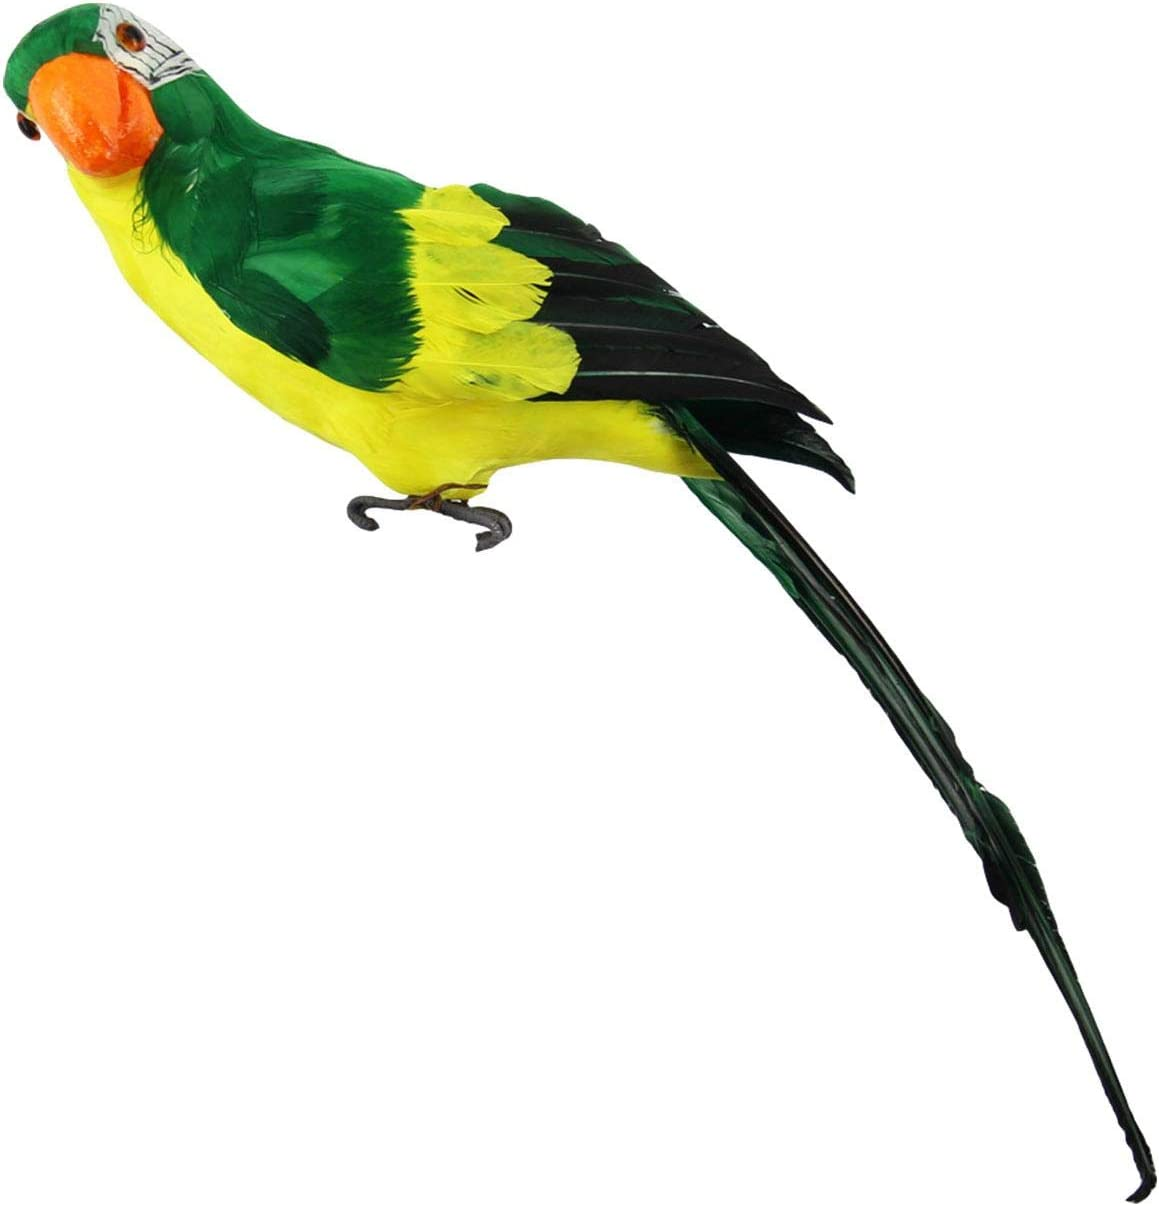 Simulation 2021 autumn and winter new Parrot Garden Lifelike outlet Bird Outdoor Orname Decoration